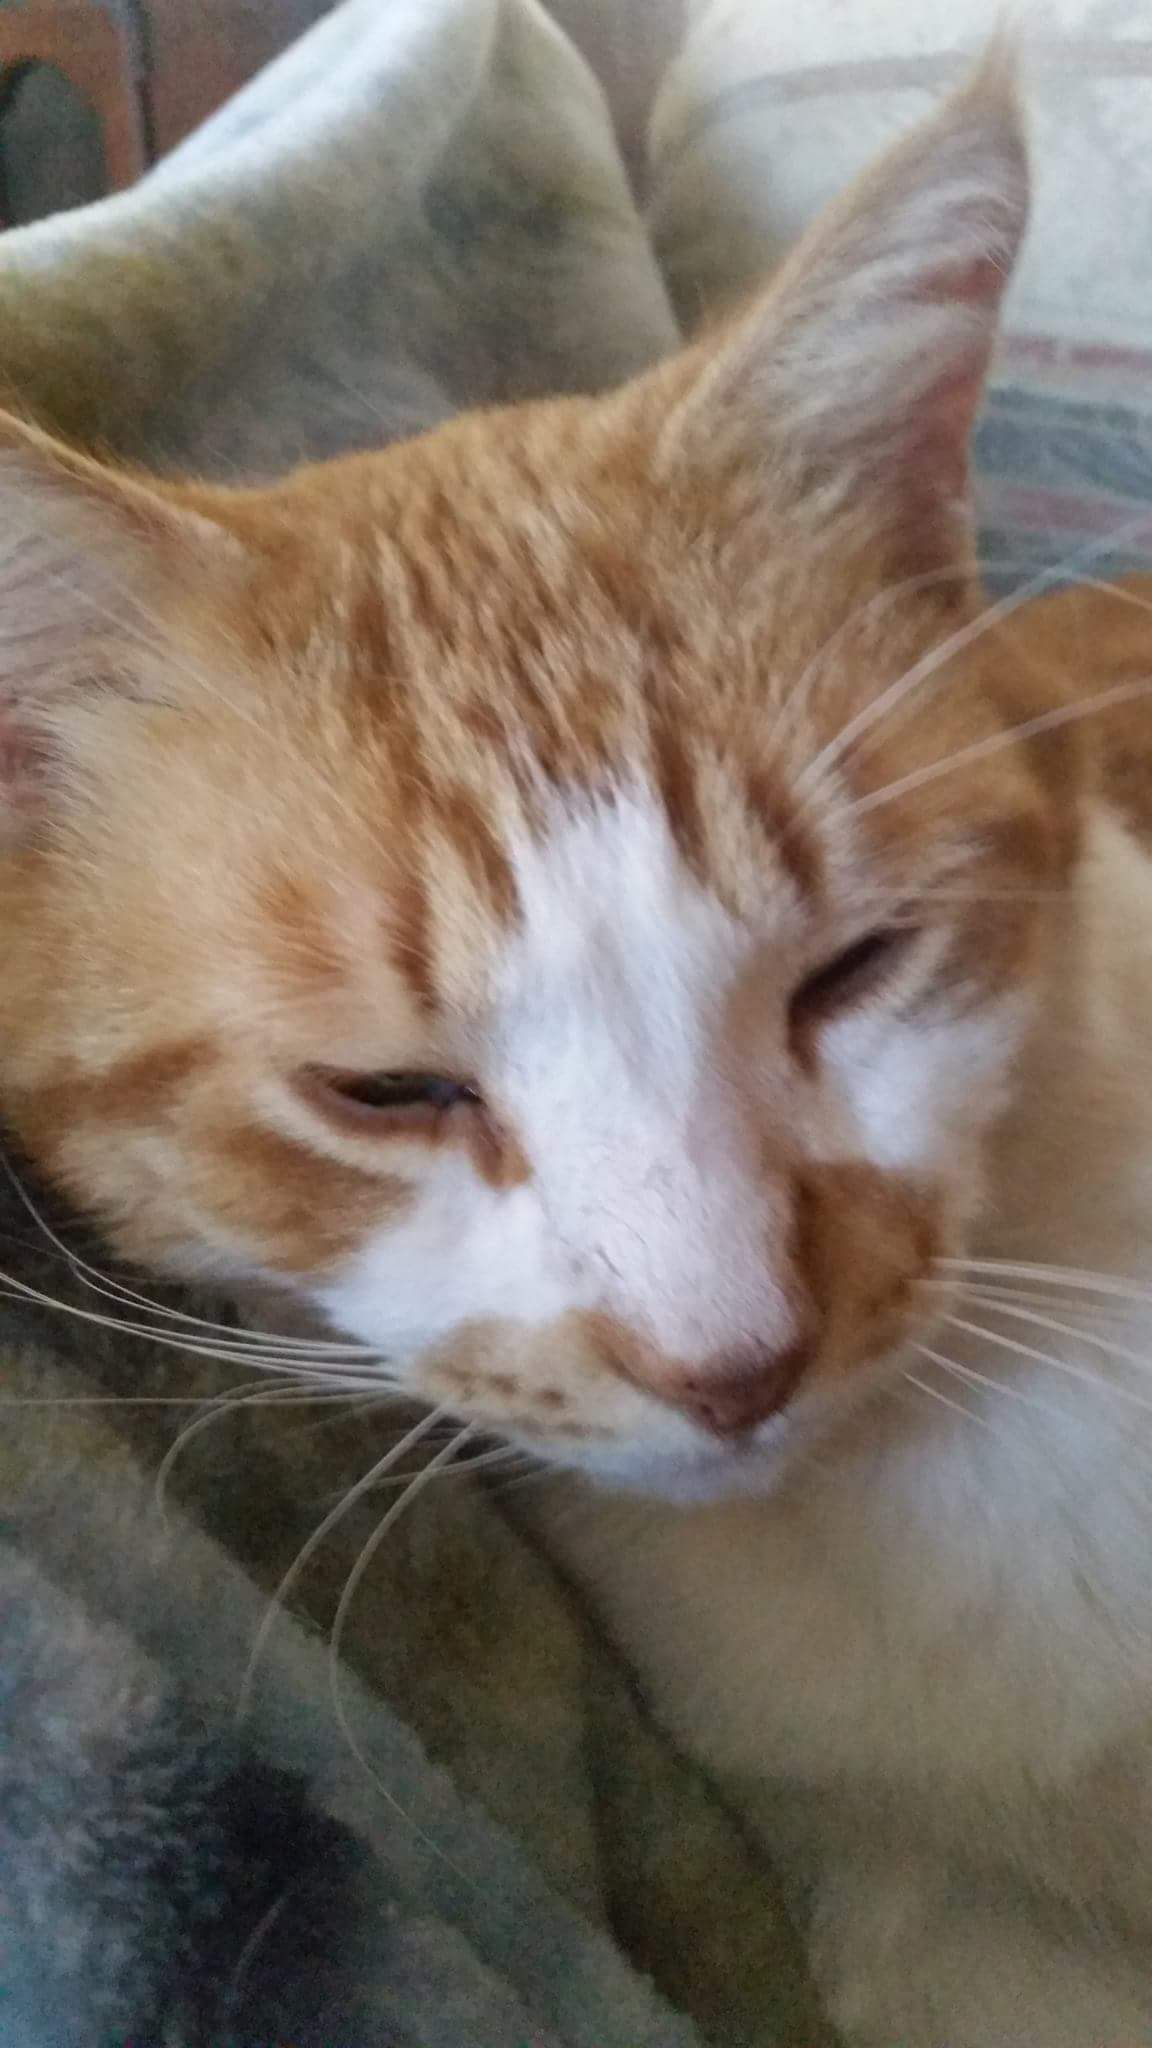 Roberta Doner Challman Ct Lost Pets Missing In Thomaston Ct Day 3 Male Fixed Travels Litchfield Street Center Grove And Know Lost Cat Losing A Pet Cats